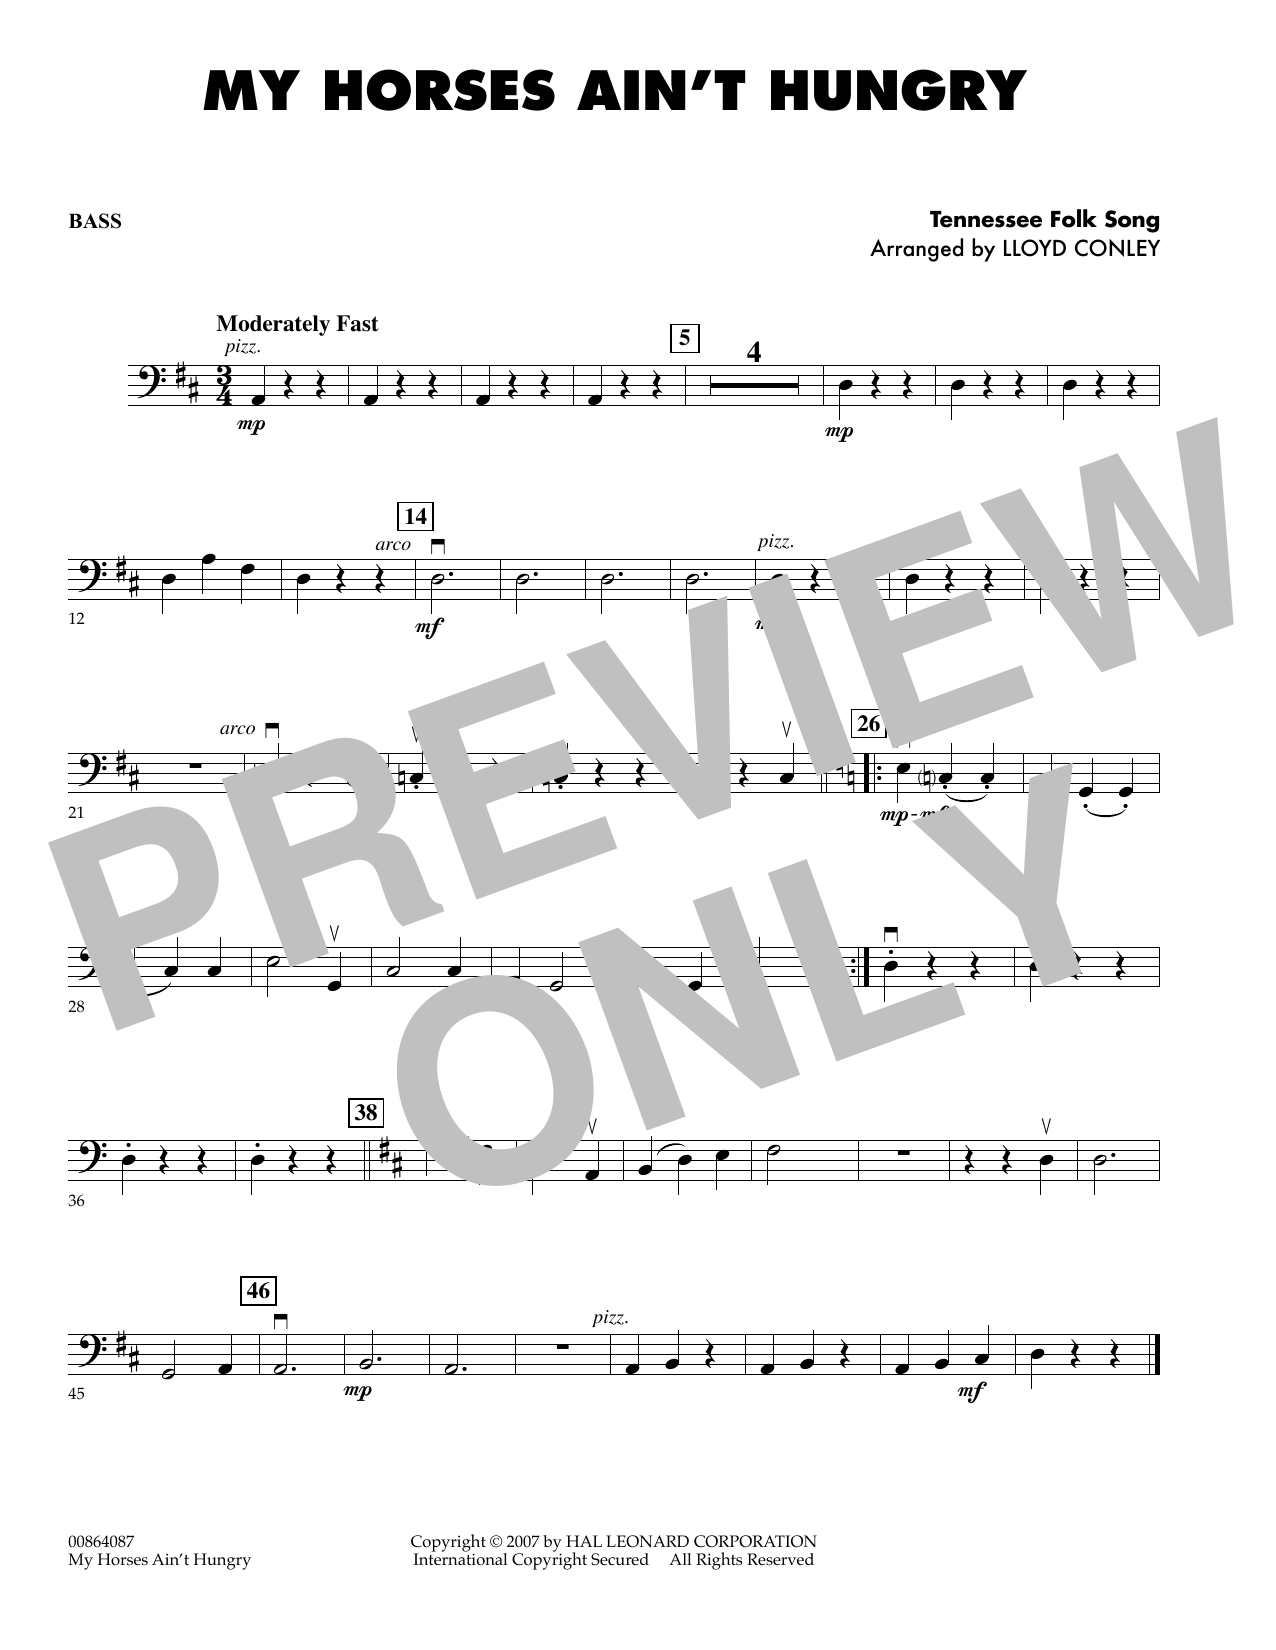 My Horses Ain't Hungry - Bass sheet music